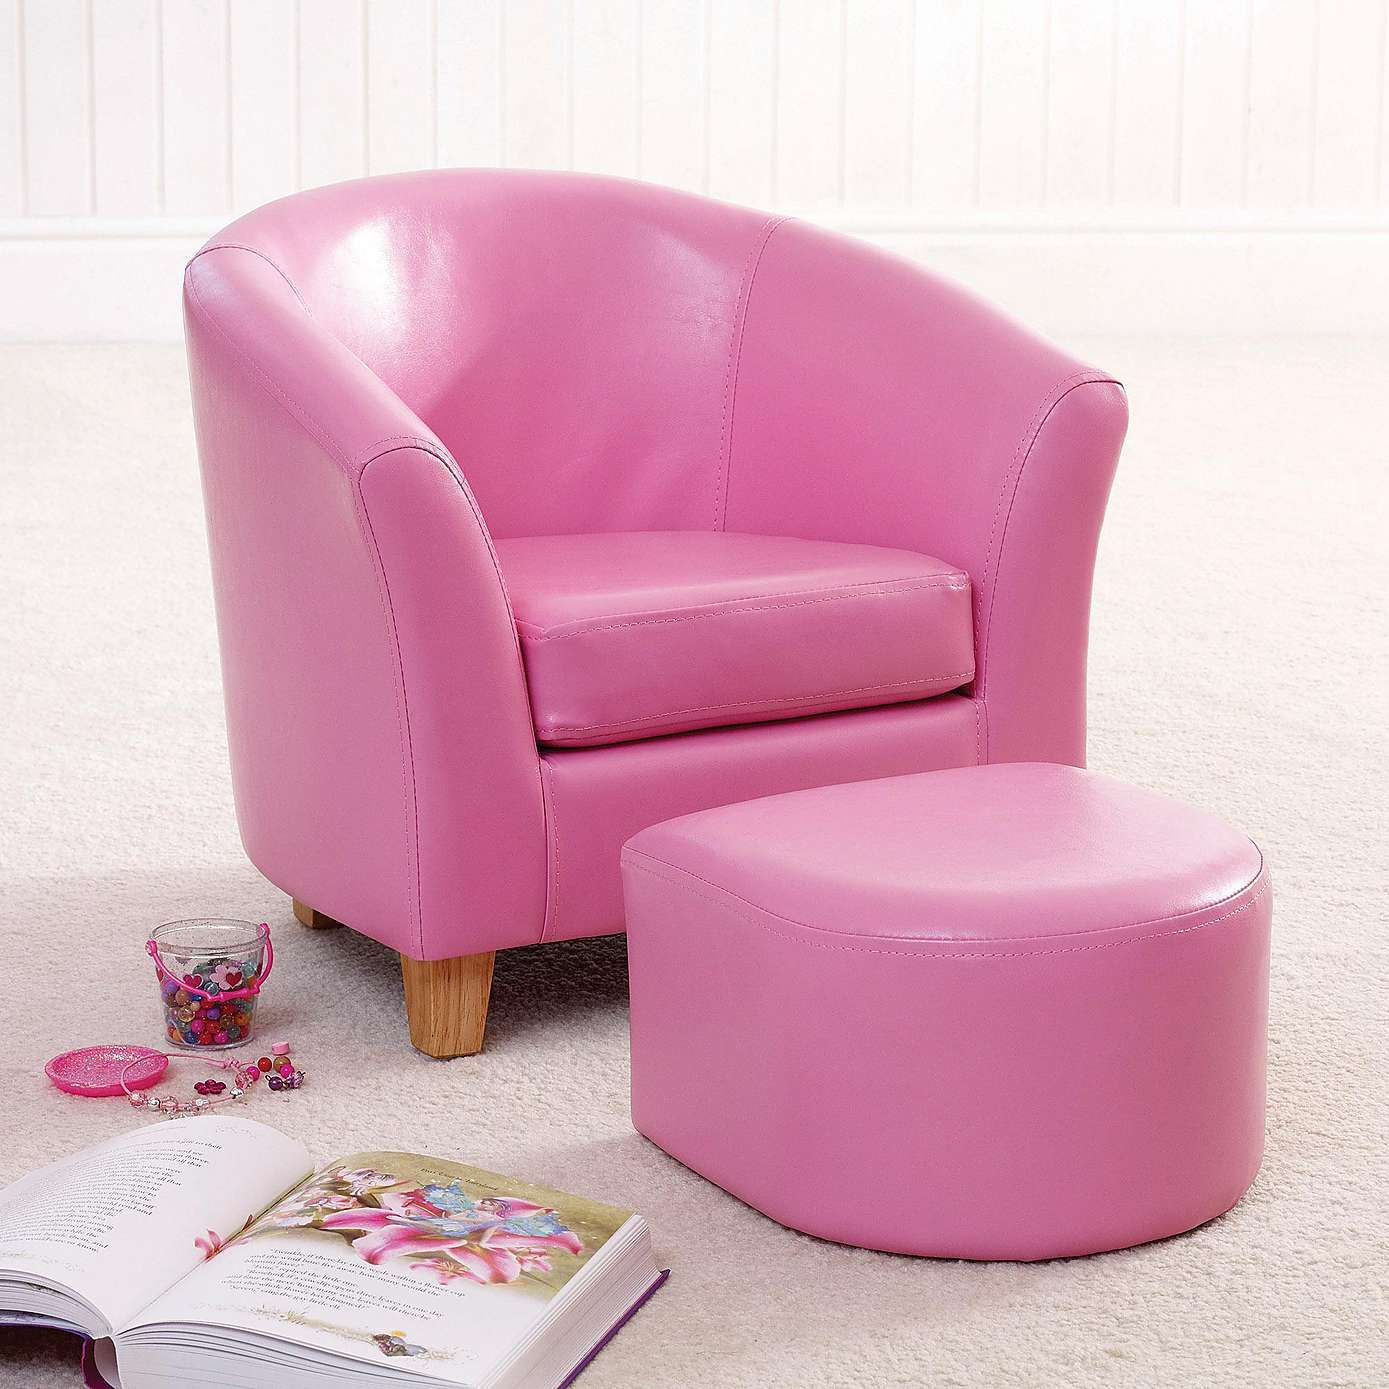 Kids Pink Faux Leather Tub Chair and Stool | Dunelm | Bedrooms ...